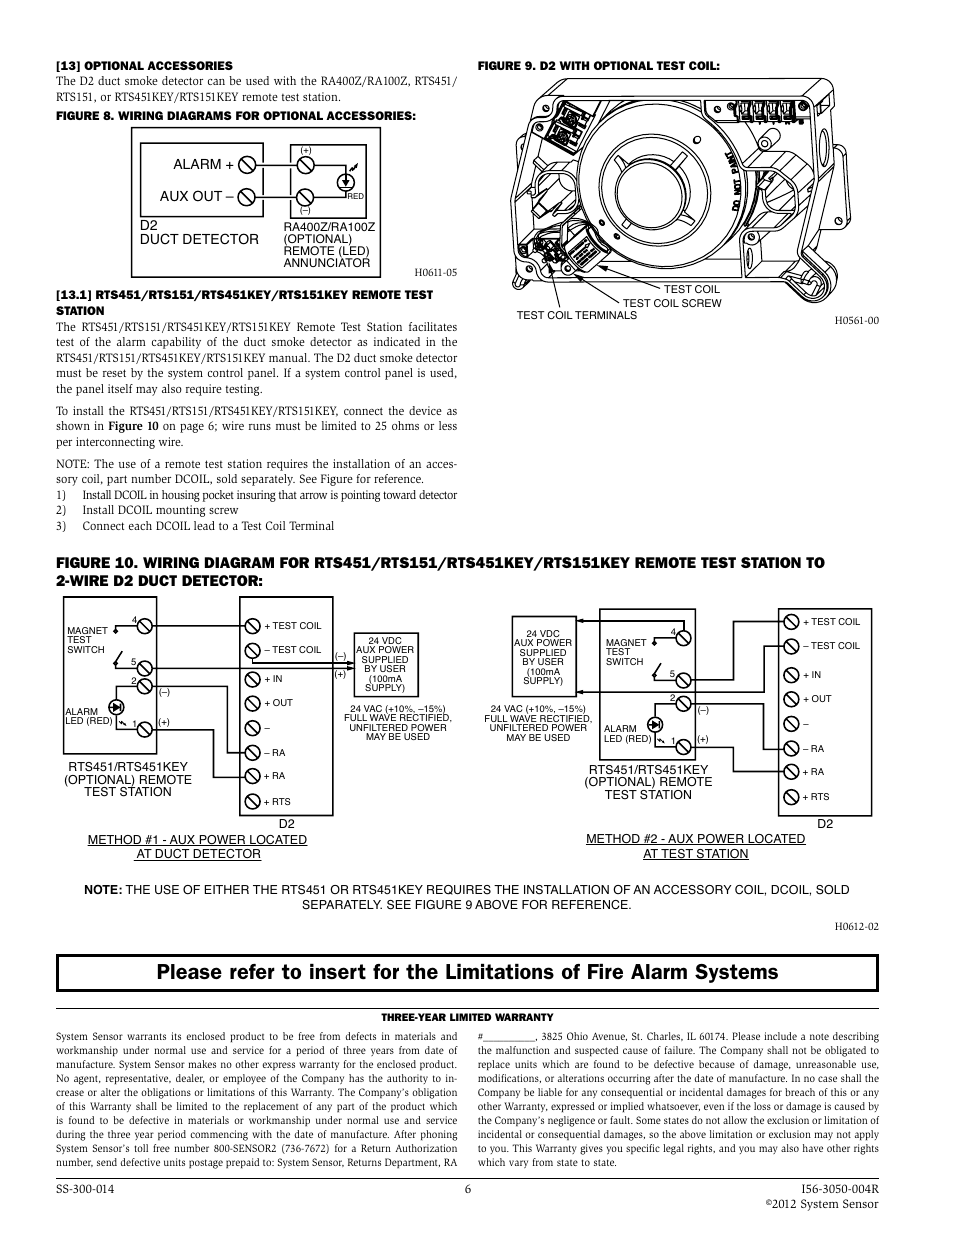 system sensor d2 page6 annunciator wiring diagram friendship bracelet diagrams \u2022 free 5R55E Transmission Wiring Diagram at bayanpartner.co